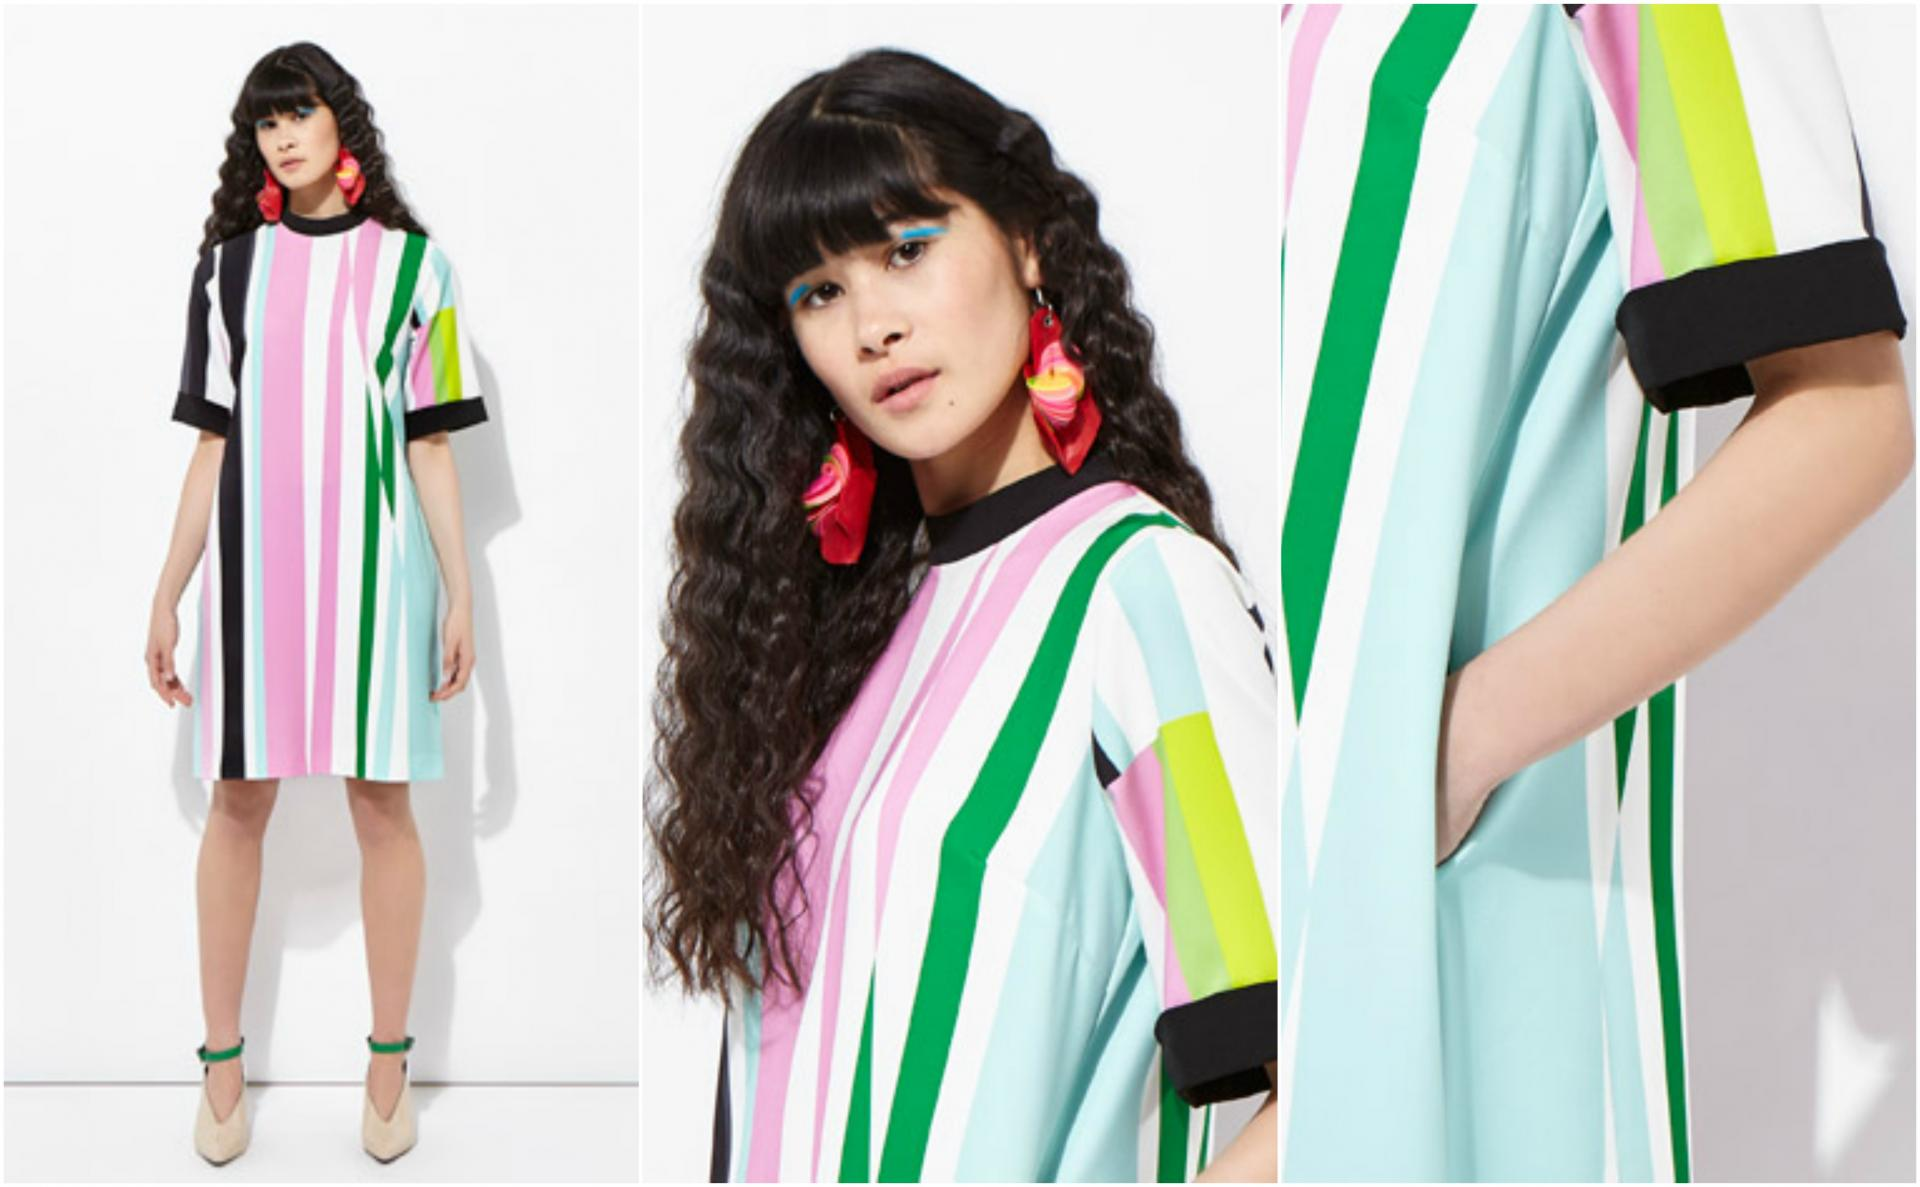 Joanne Hynes SS18: 'You Do You and I'll Do Me' Collection